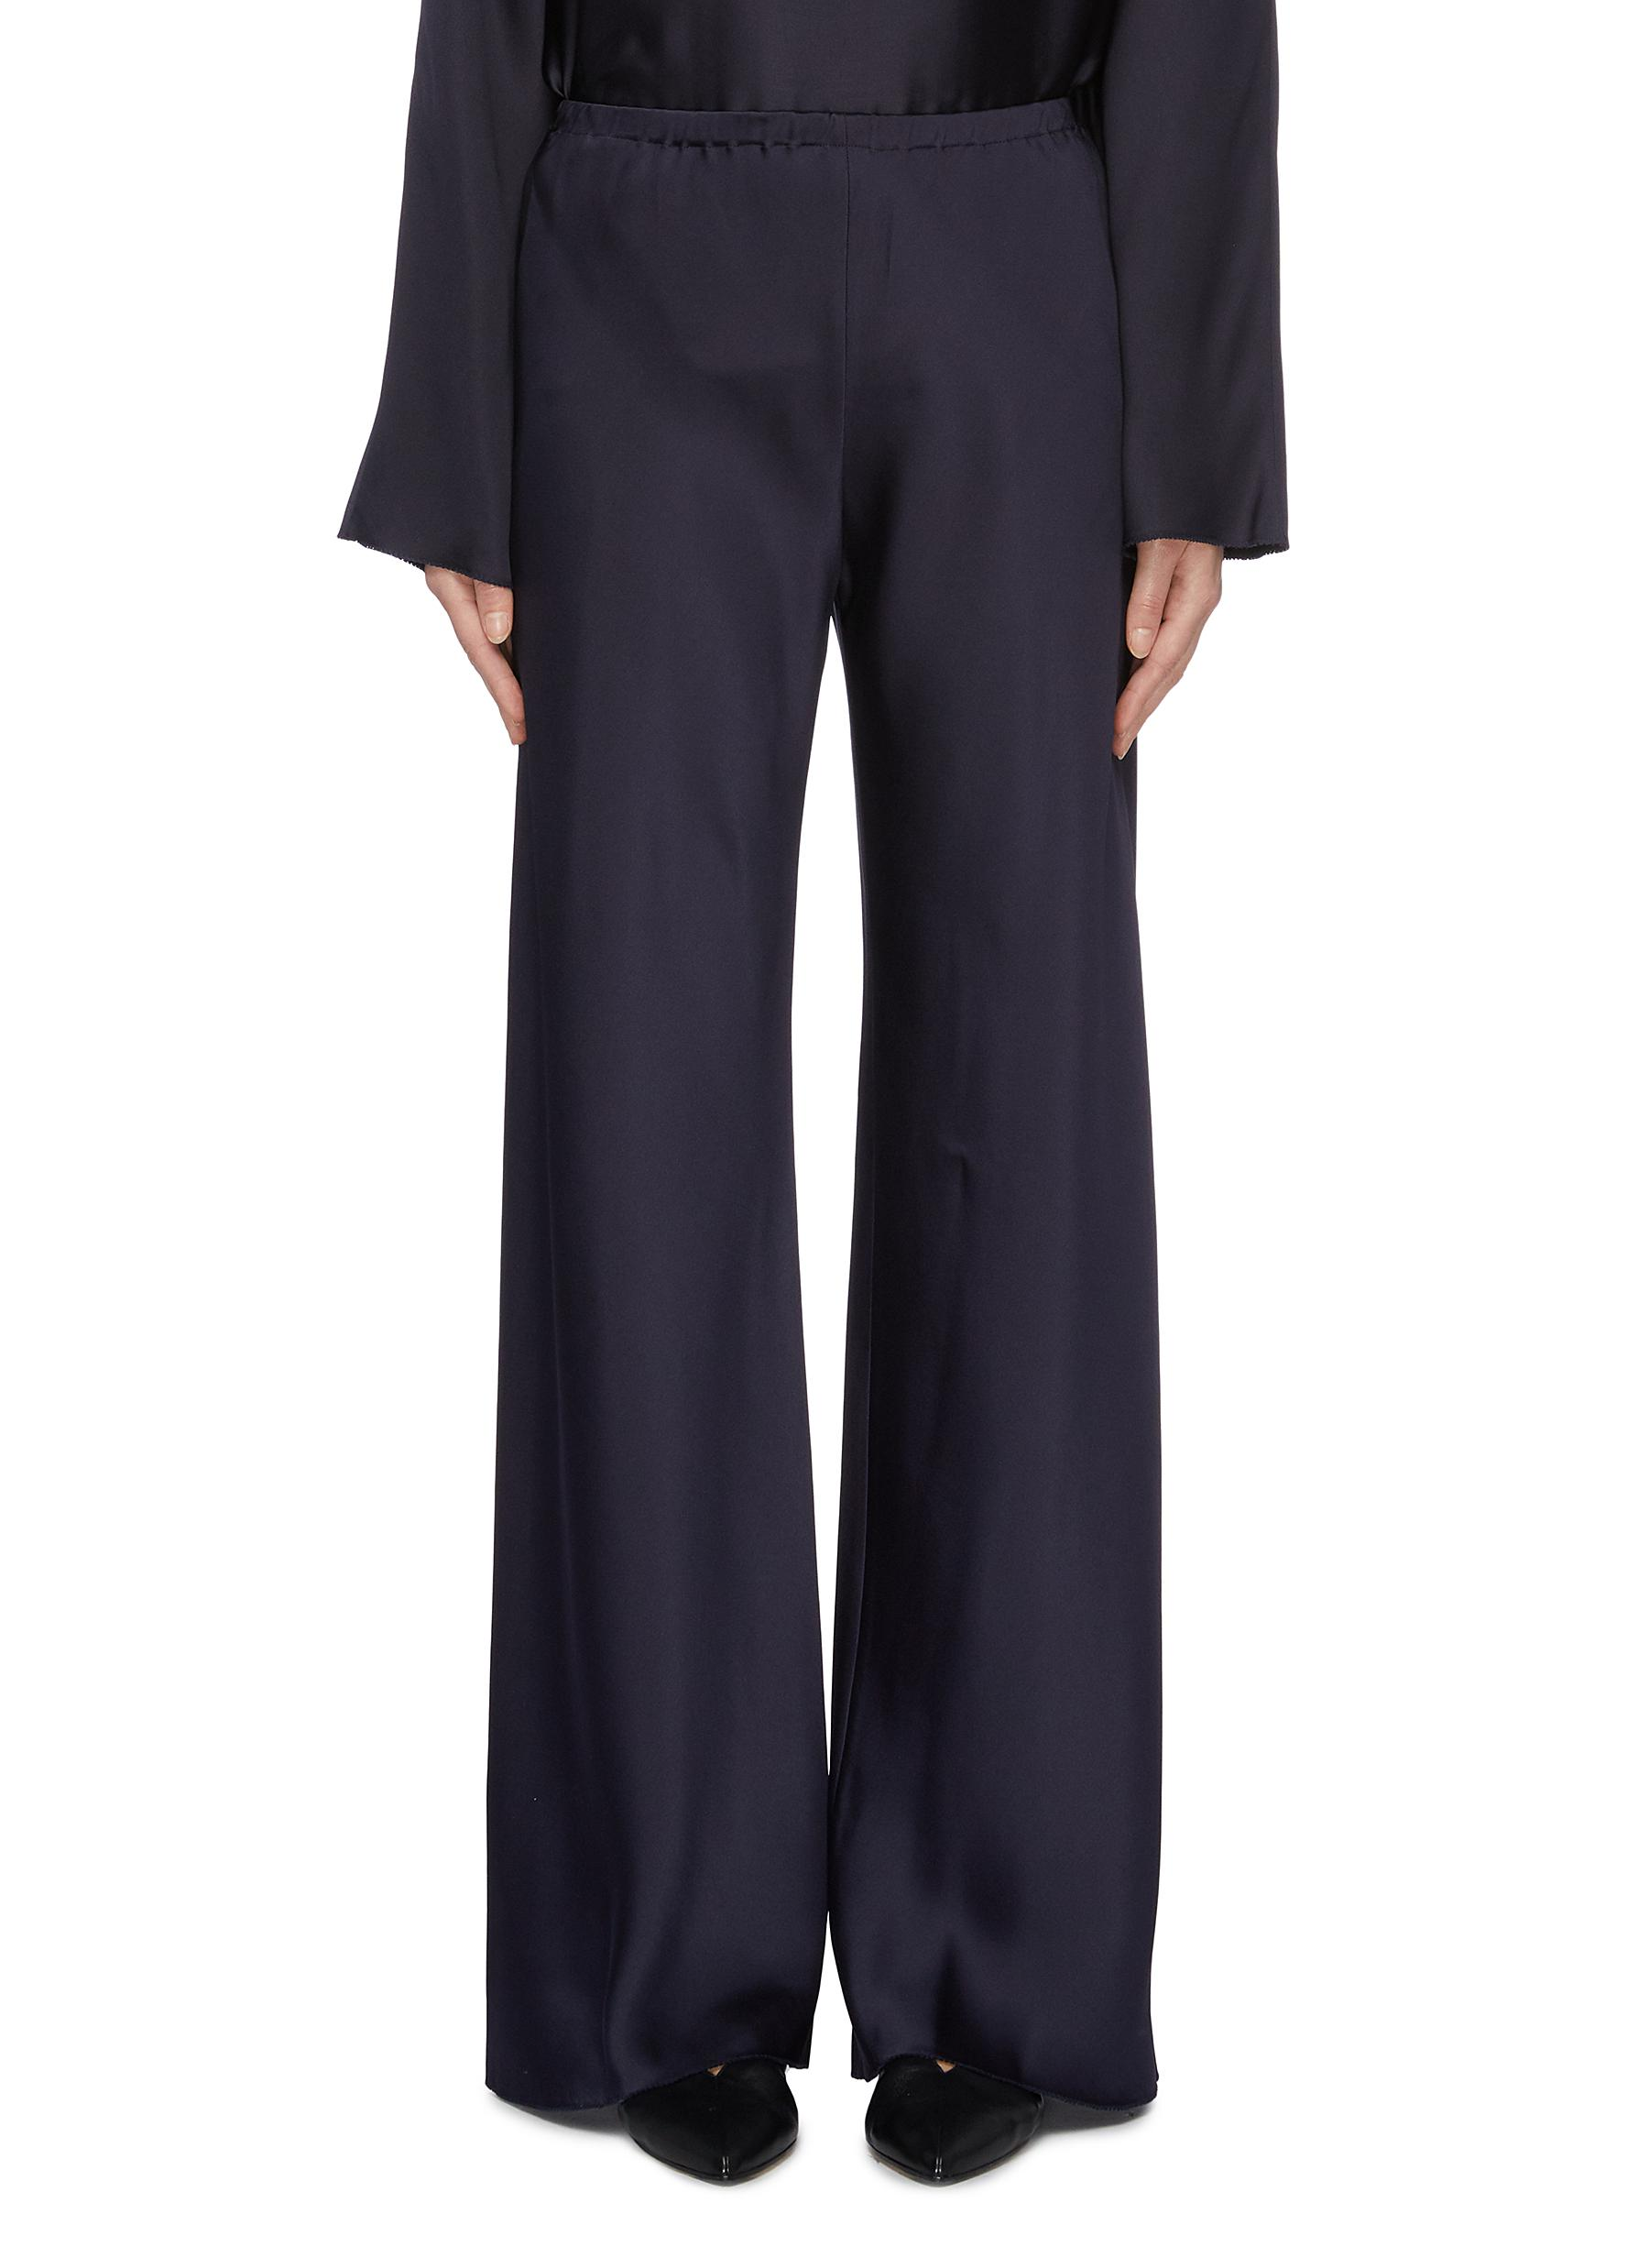 Gala silk cady wide leg pants by The Row